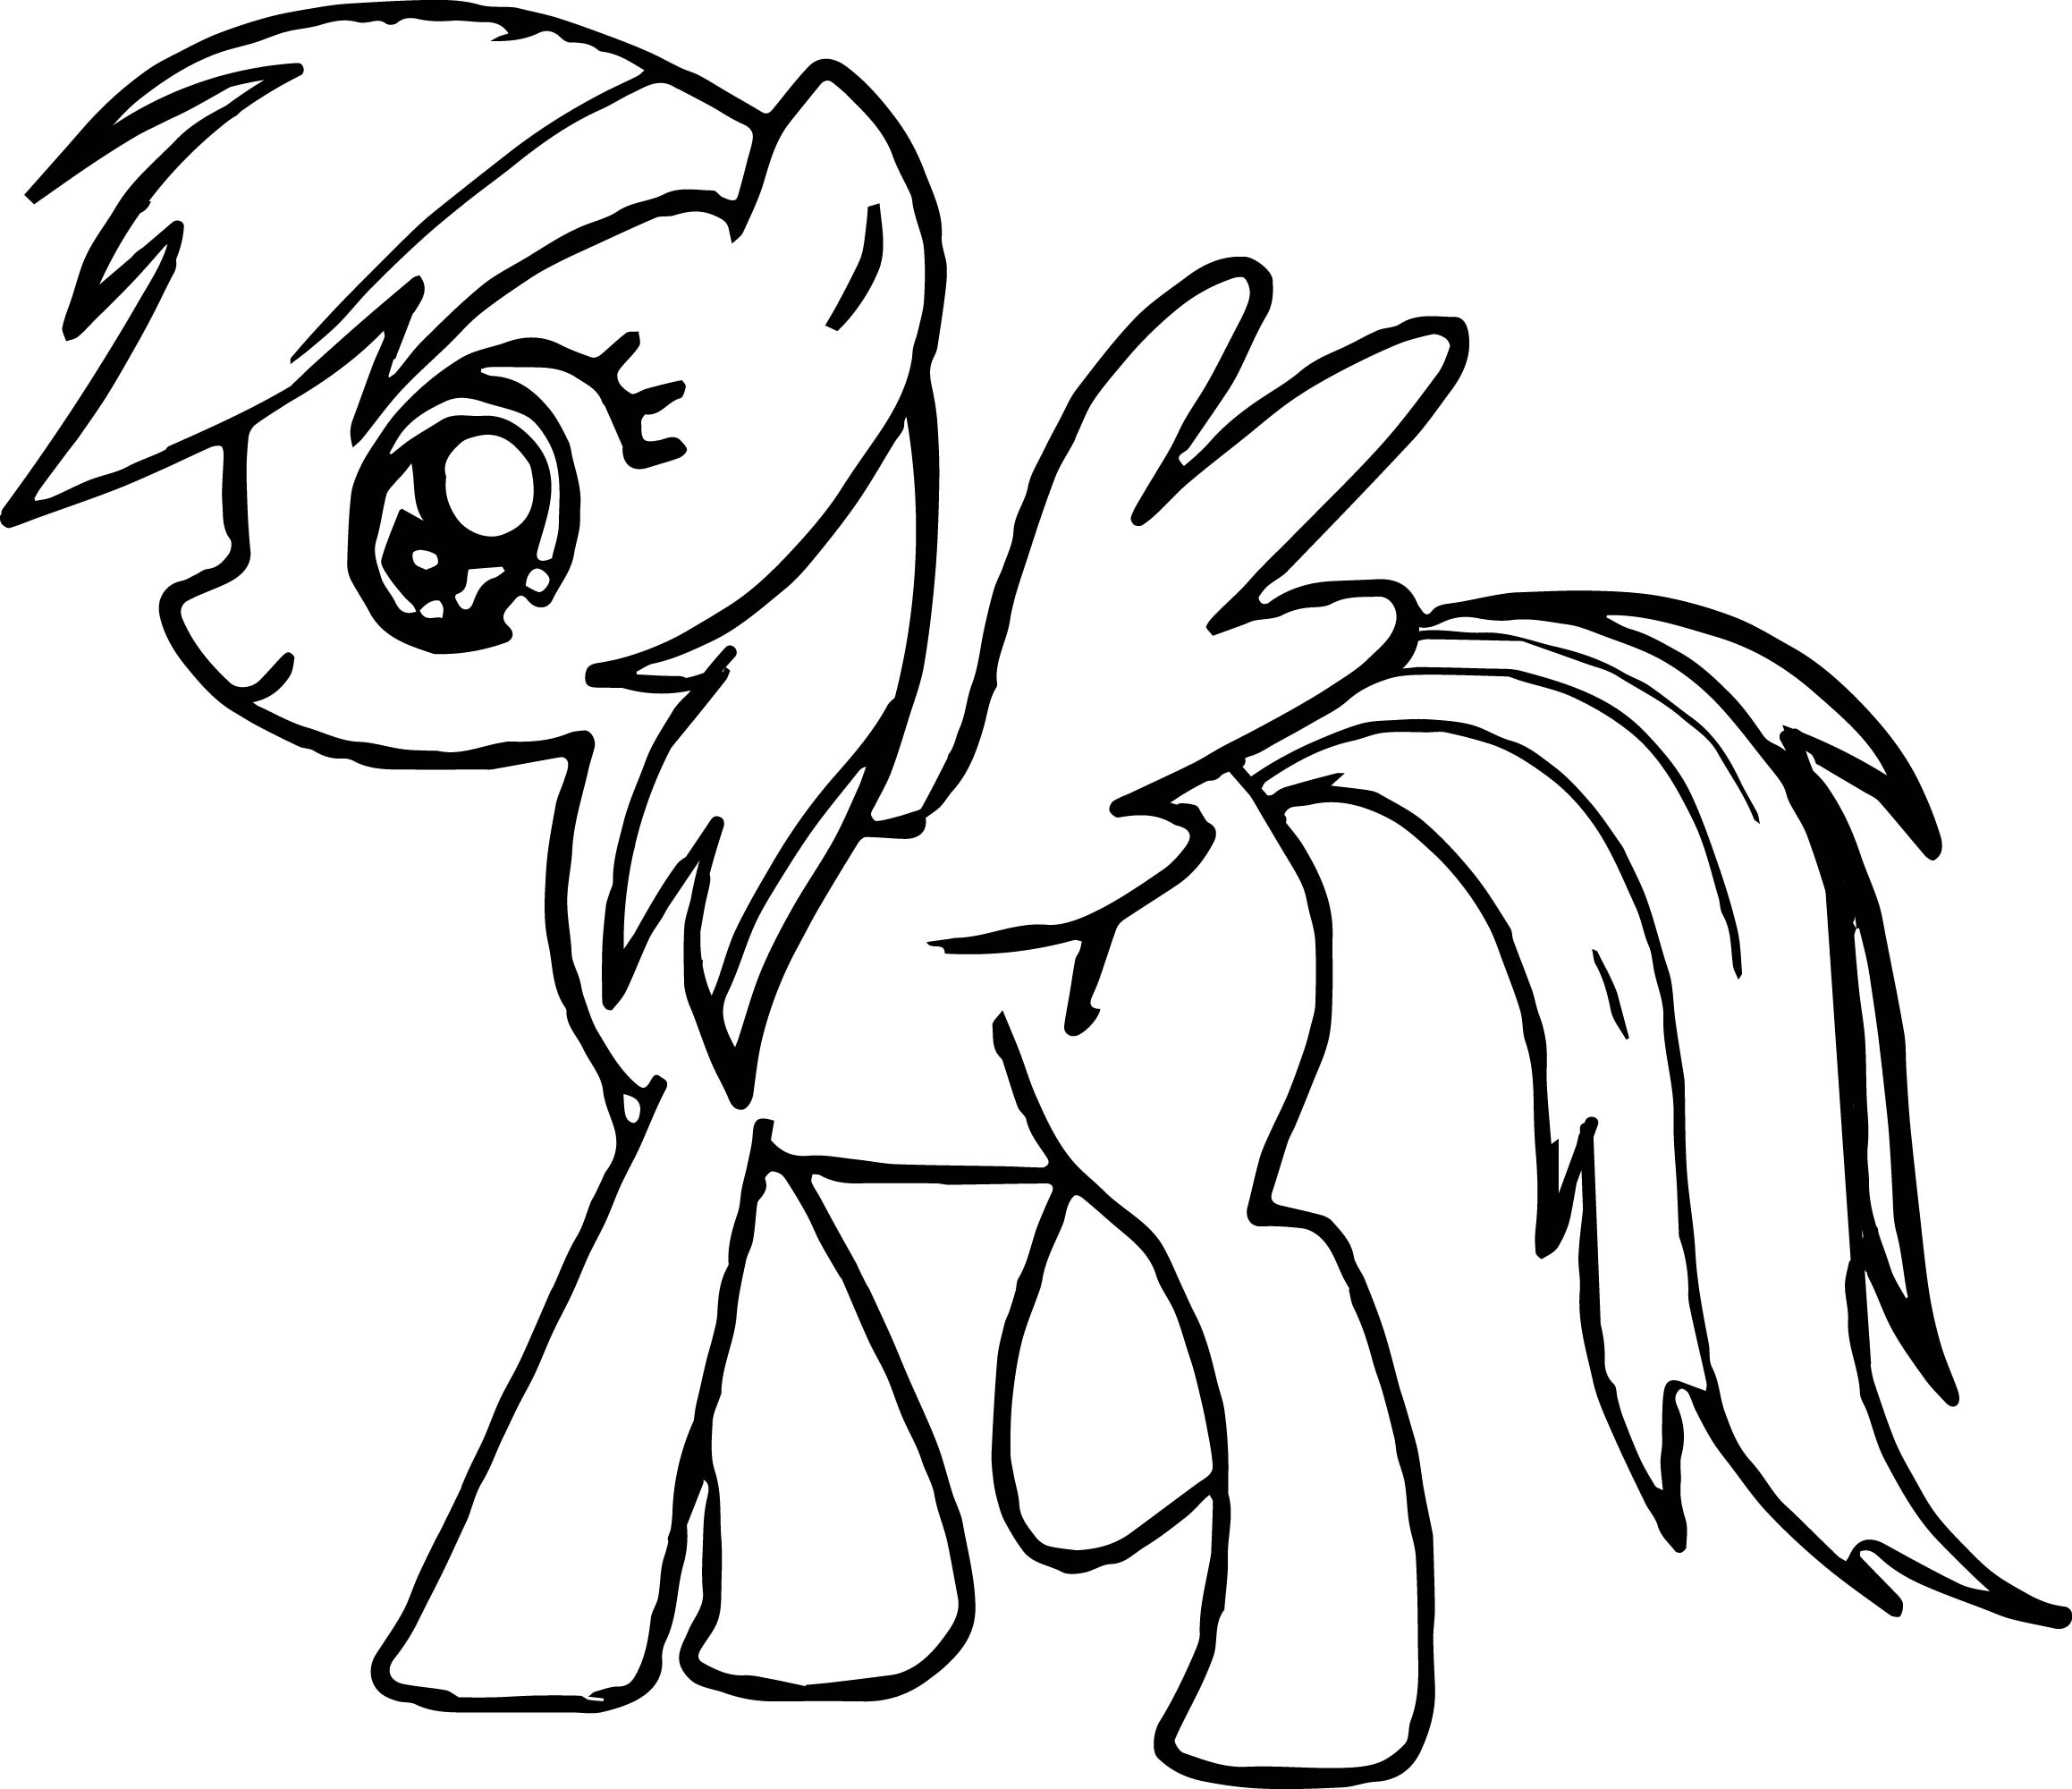 walking my little pony coloring page - Pony Coloring Pages